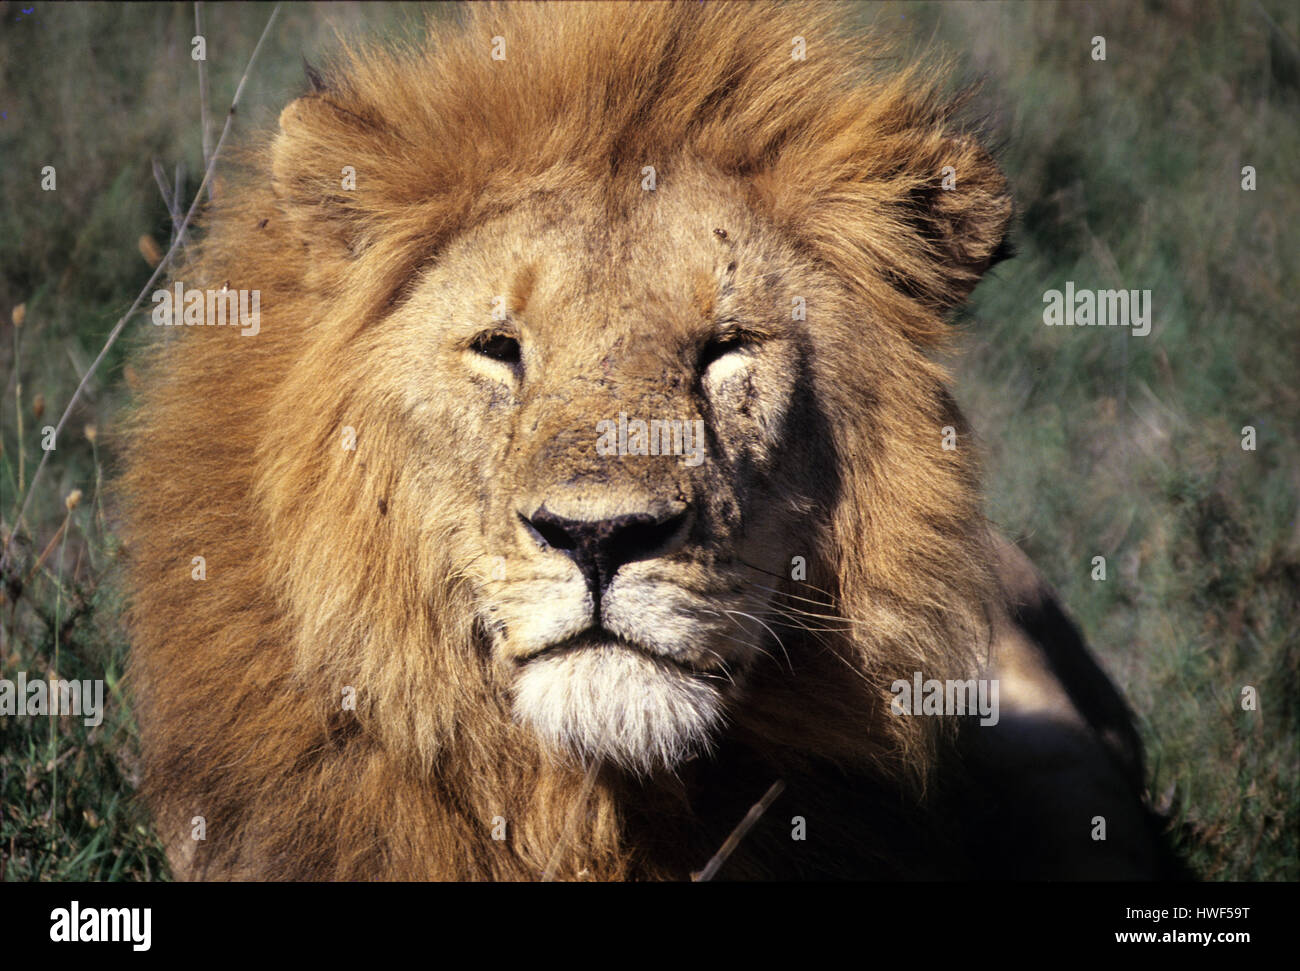 Male lion in Masai Mara Game Reserve, Kenya - Stock Image